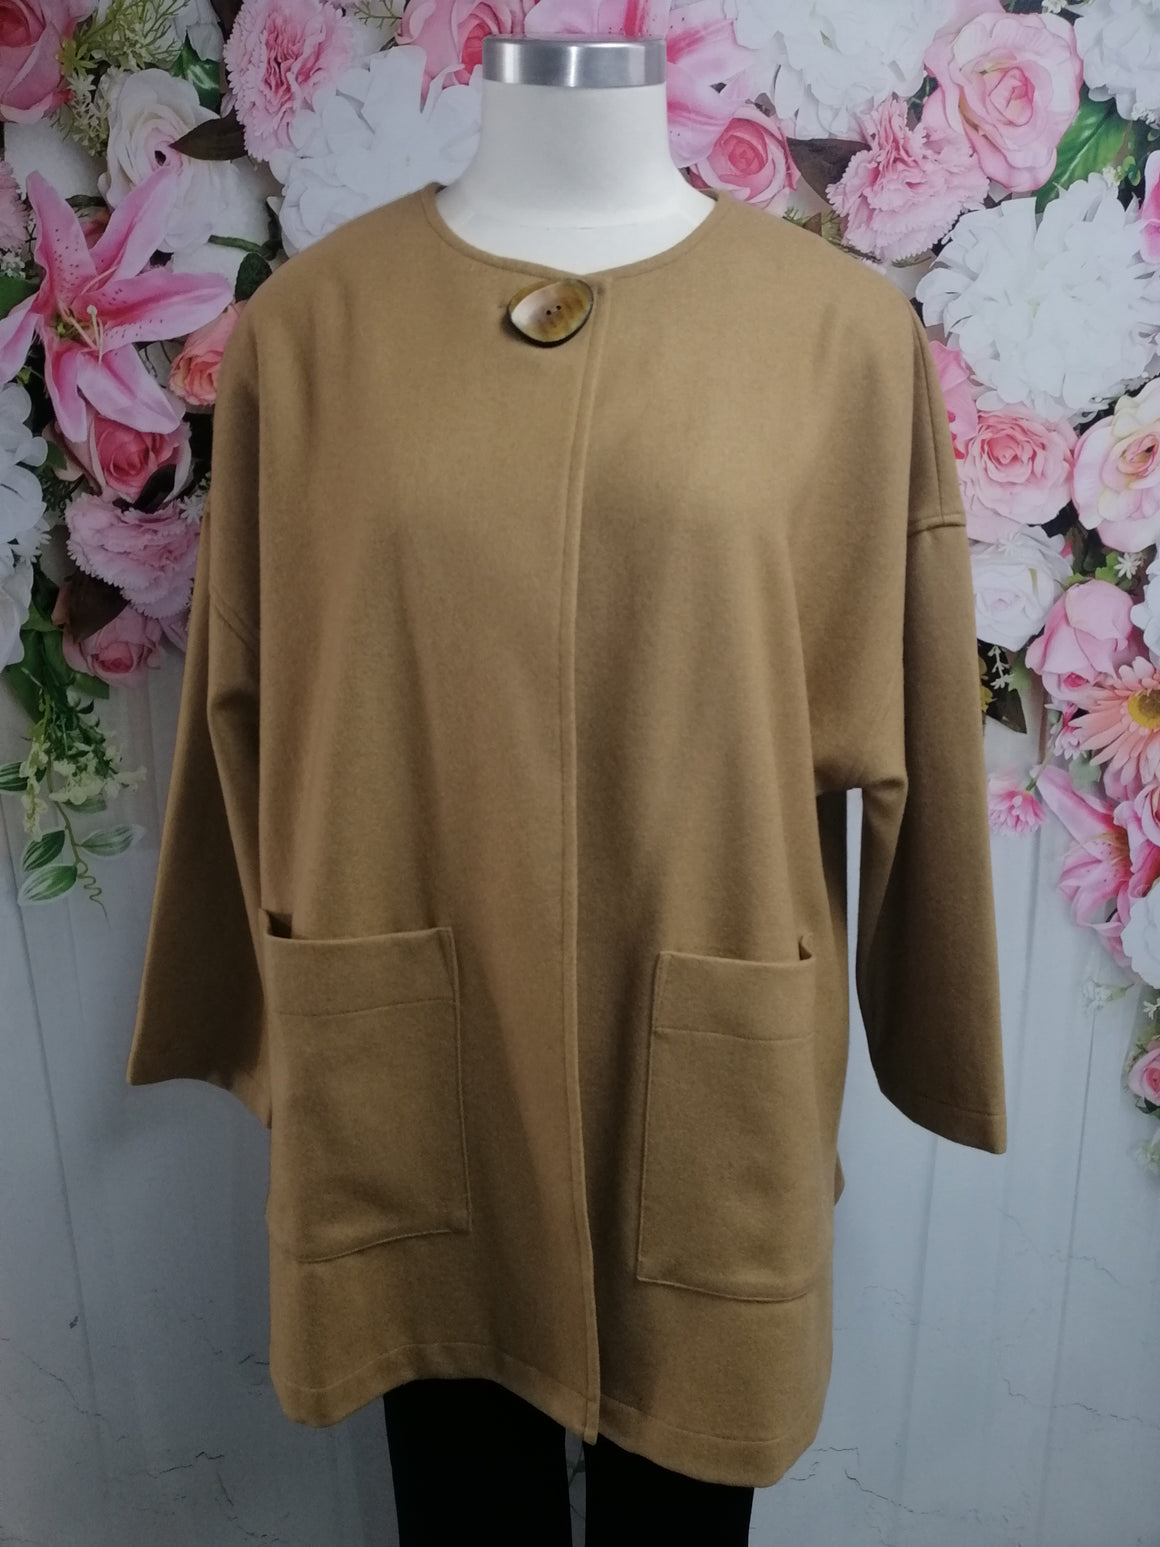 Bittermoon Zaria Coat - Camel - Fashion Focus